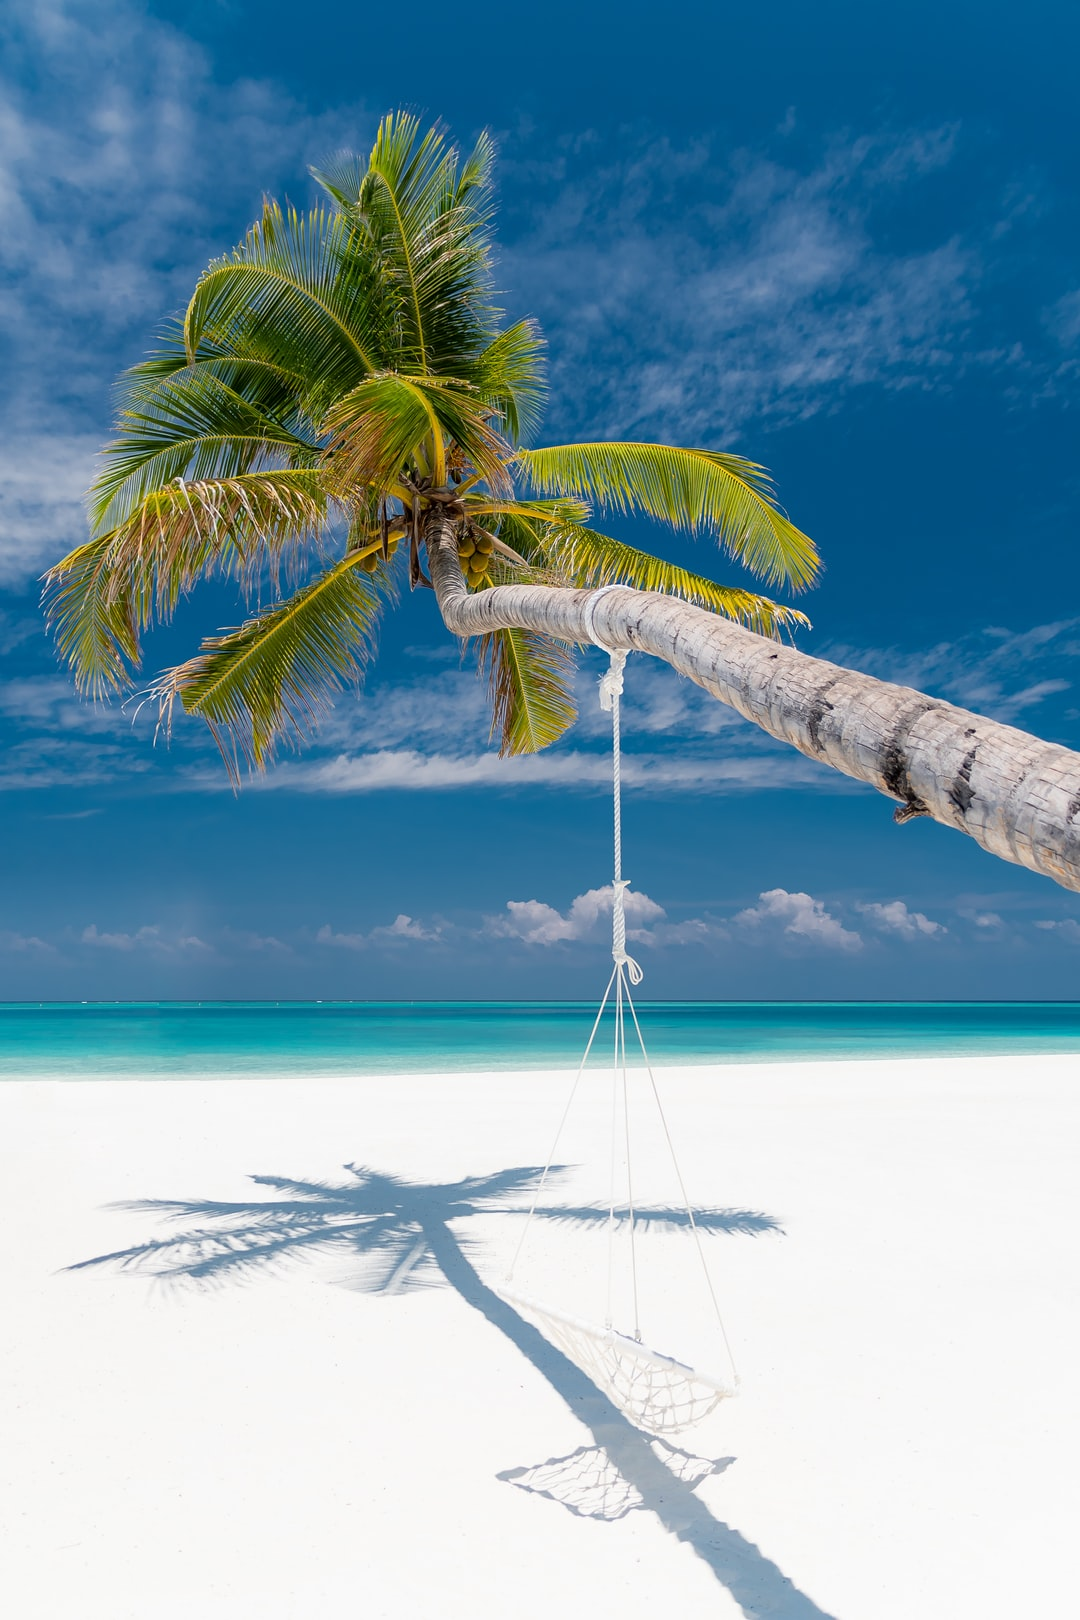 Bent Coconut Tree With Hammock Near Shore During Daytime Photo Free Summer Image On Unsplash